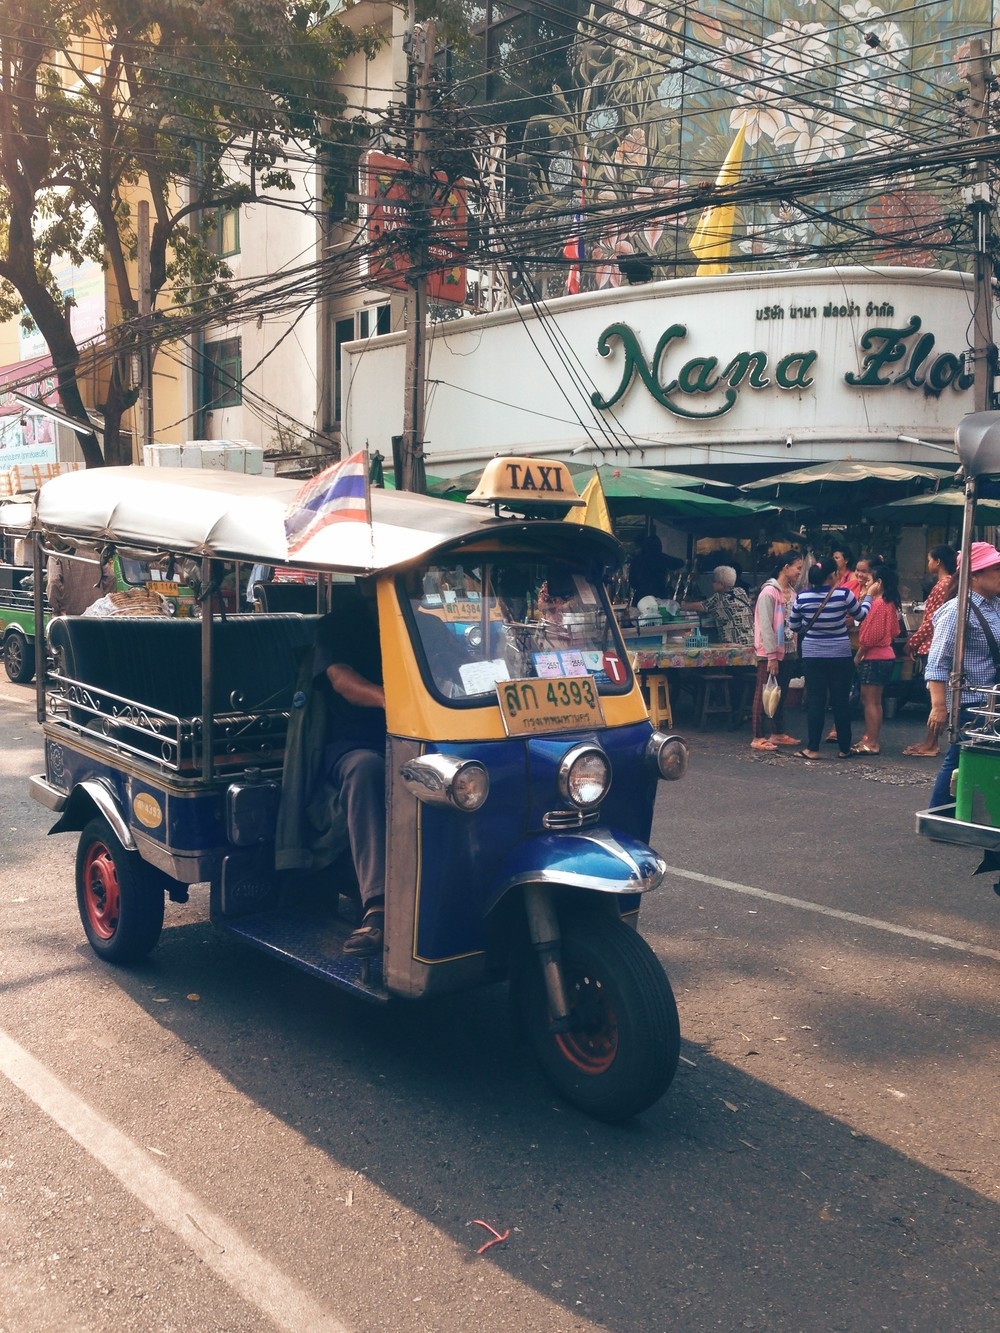 Tuk tuk vehicles flood the streets of Bangkok, used by merchants and locals alike